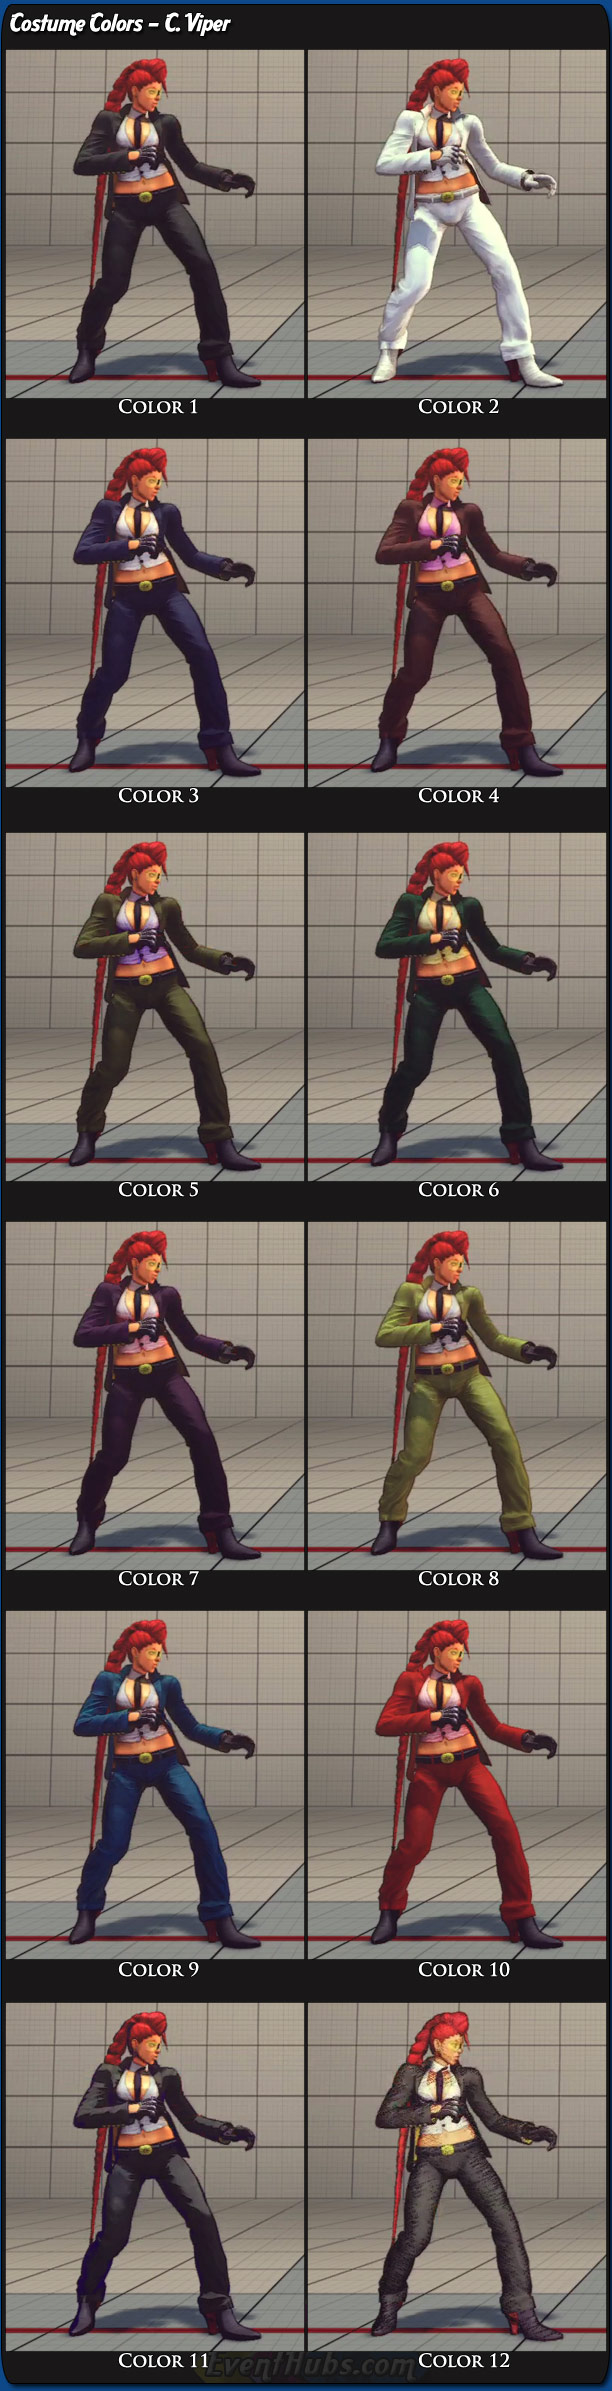 C. Viper's main costume colors for Super Street Fighter 4